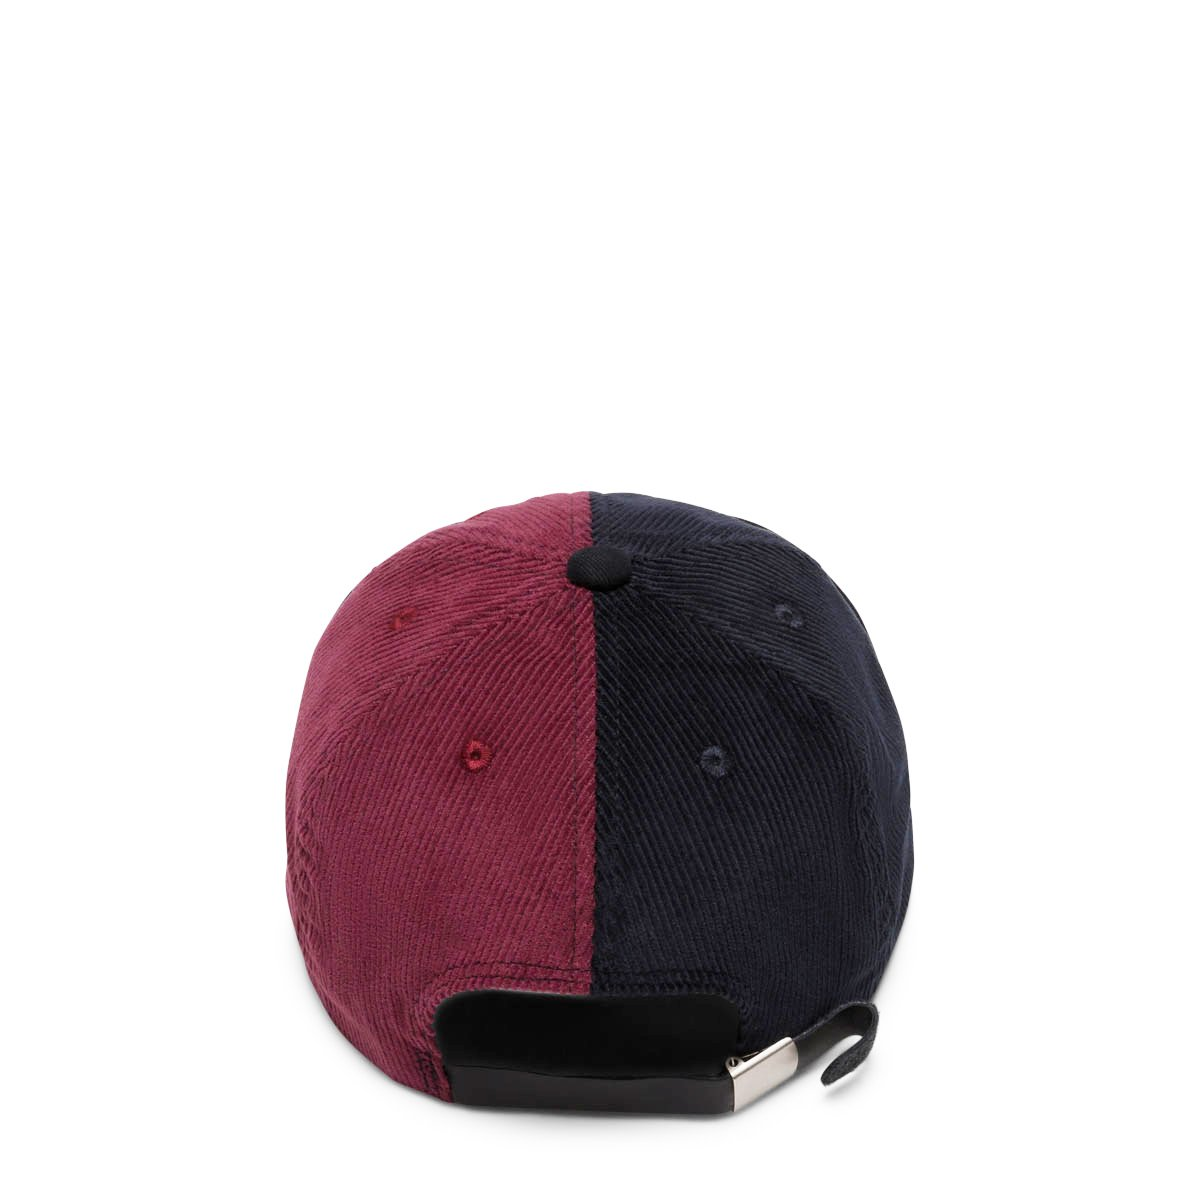 Brain Dead Bags & Accessories NAVY/MAROON/BLACK / O/S COLORBLOCKED STRAP BACK